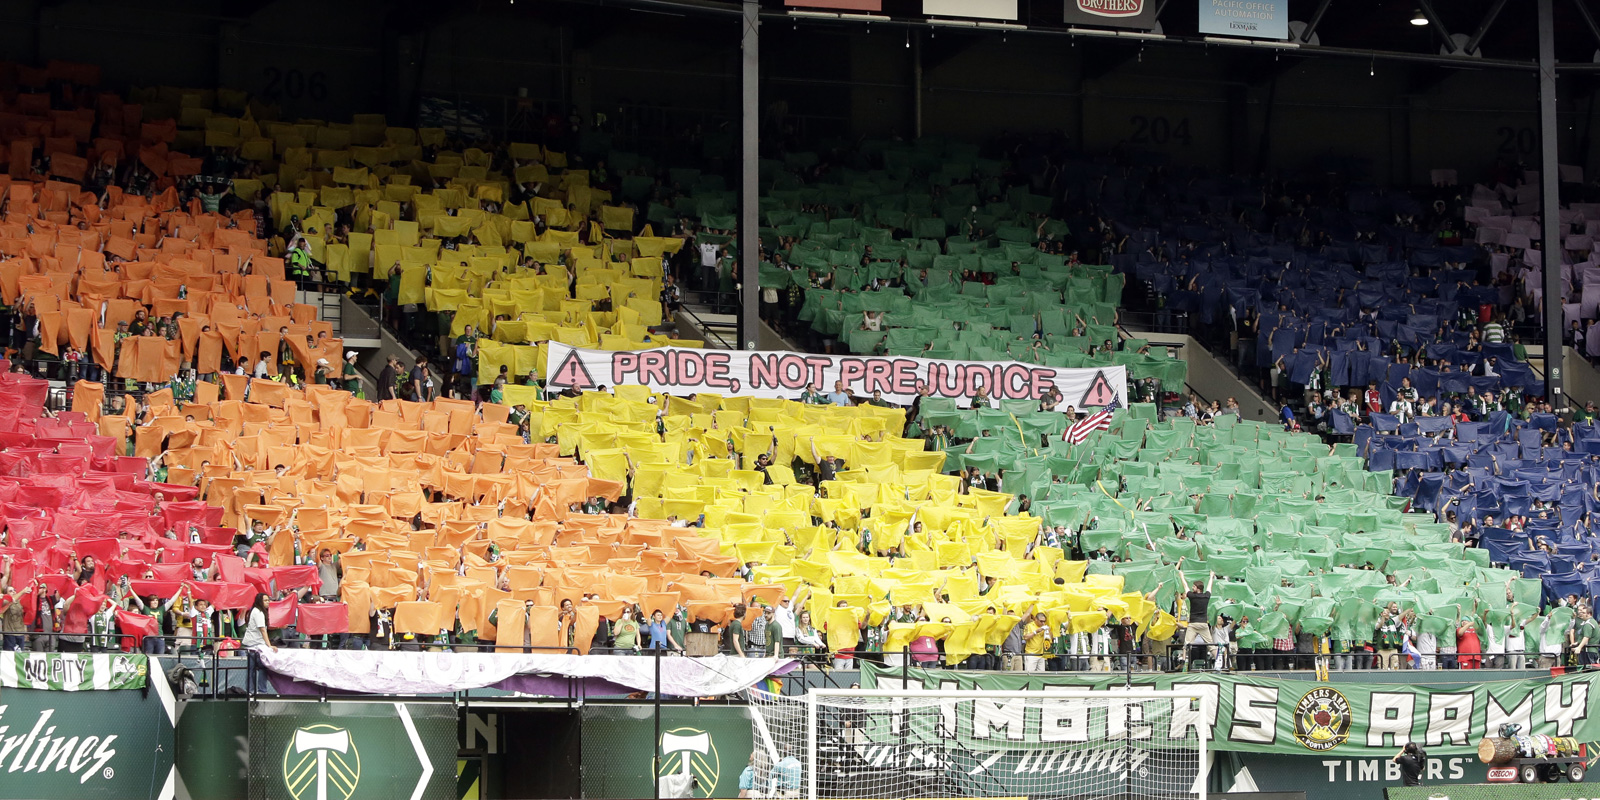 Portland Timbers fans speak out against homophobia with this tifo in a 2013 match against Chivas USA